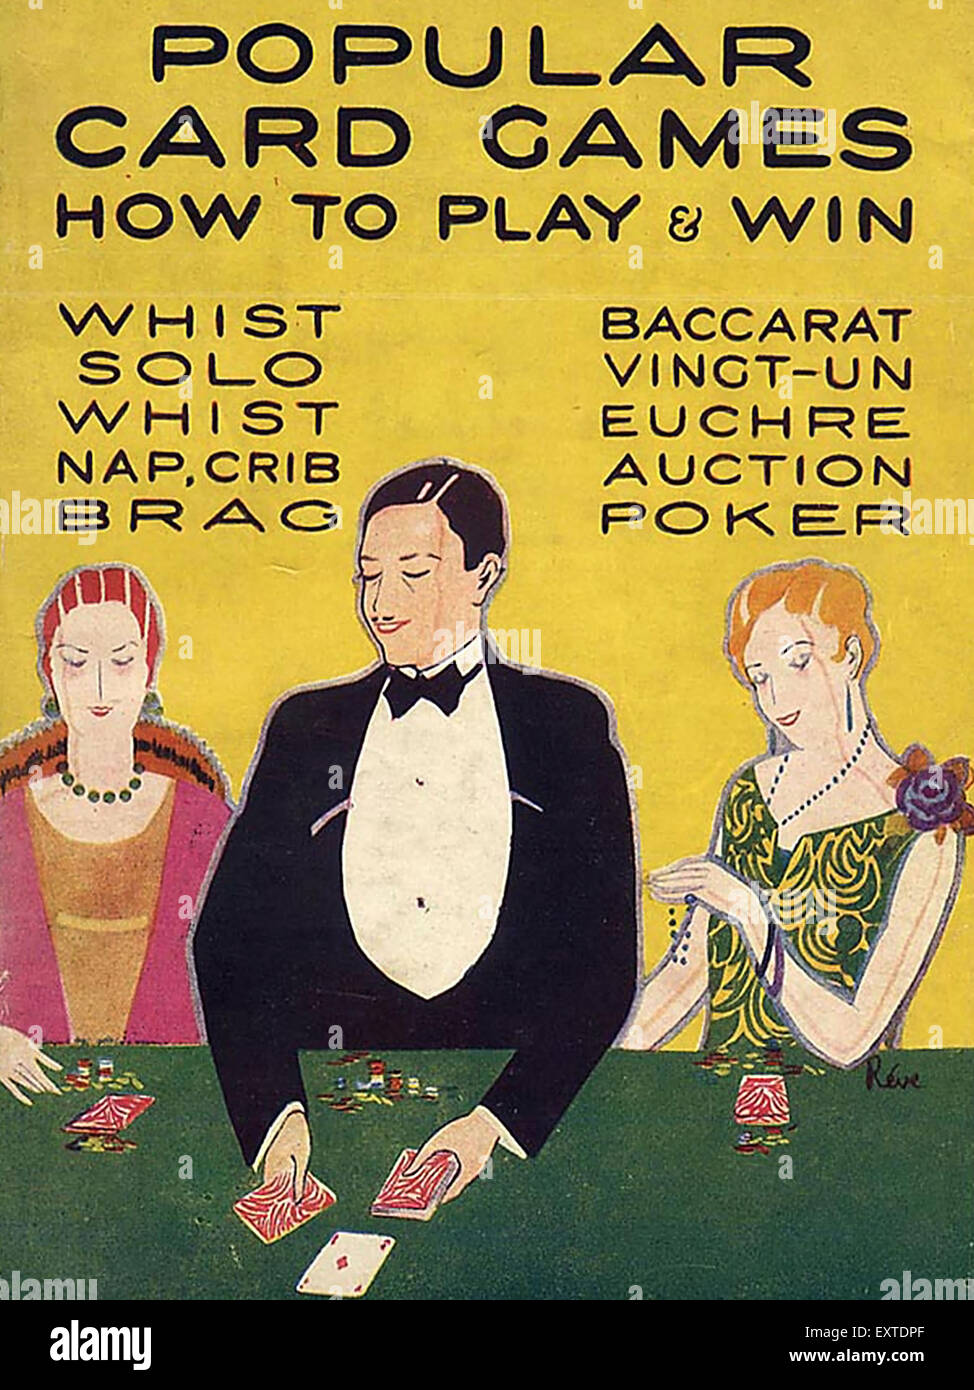 1920s Uk Popular Card Games Book Cover Stock Photo 85360199 Alamy